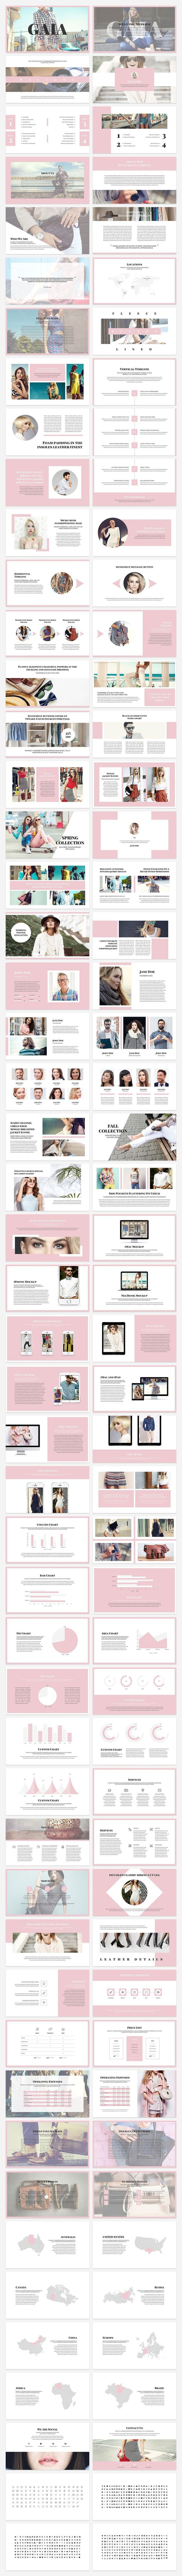 Pink feminine slide deck presentation template | perfect for women-owned small businesses and startups.